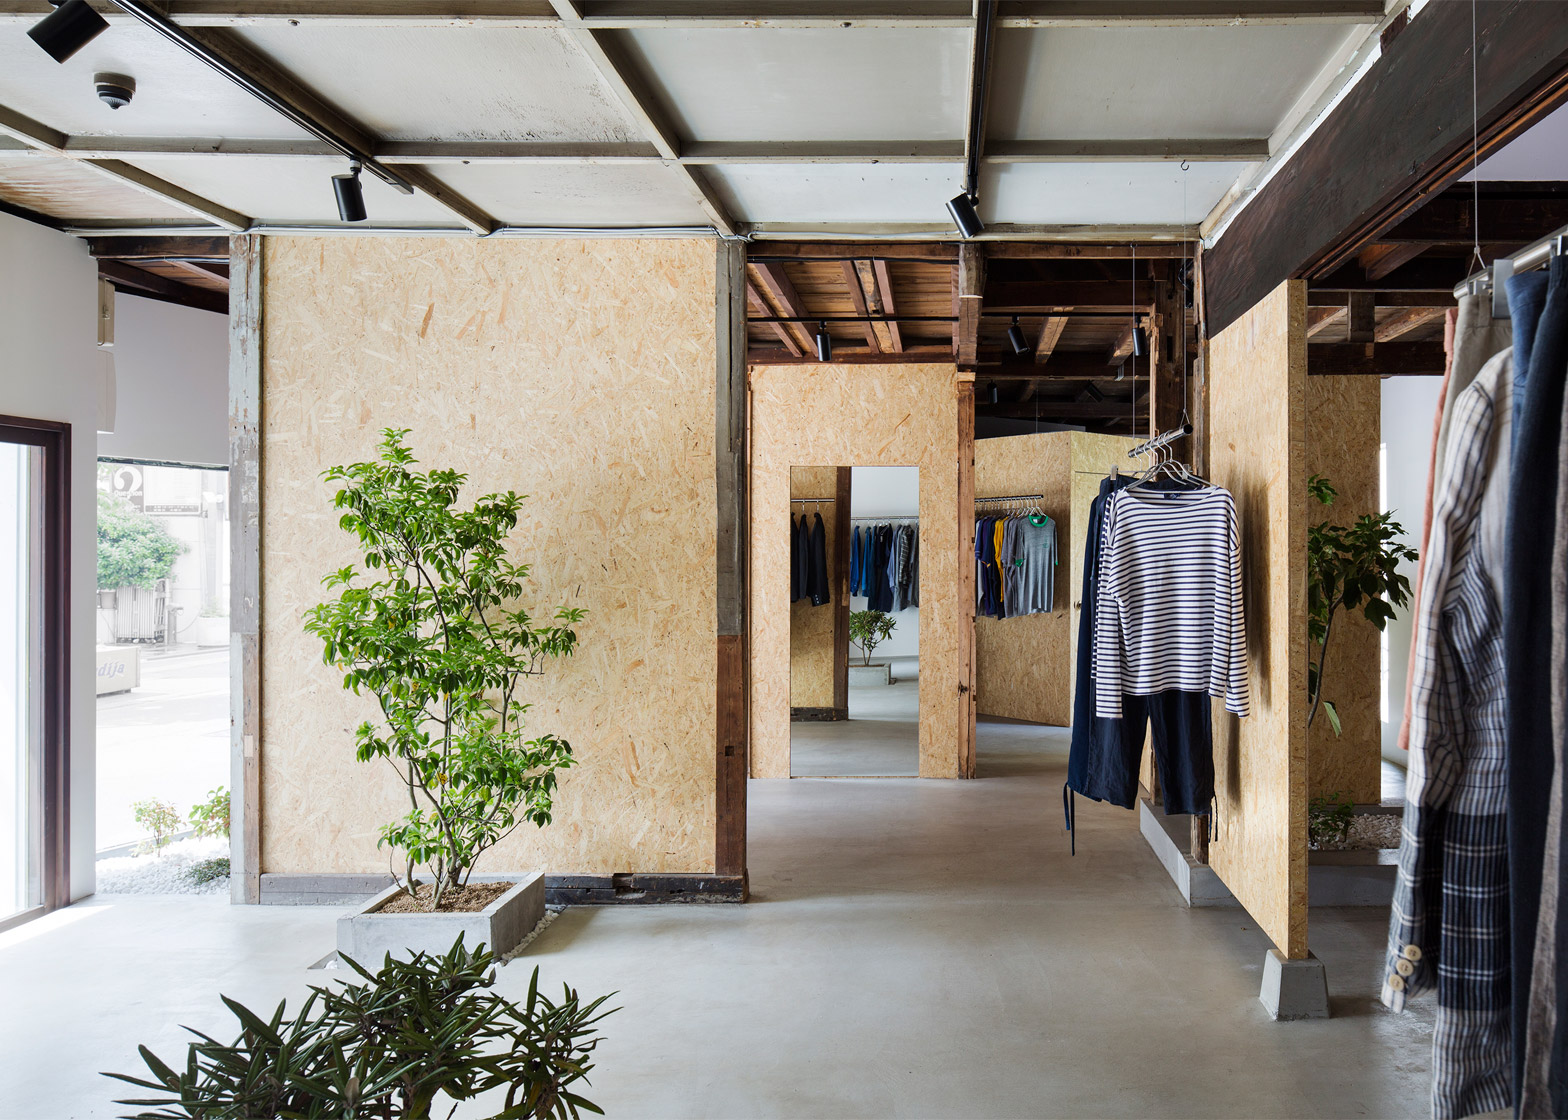 Manabu Okano Transforms 1940s Japanese House Into Boutique